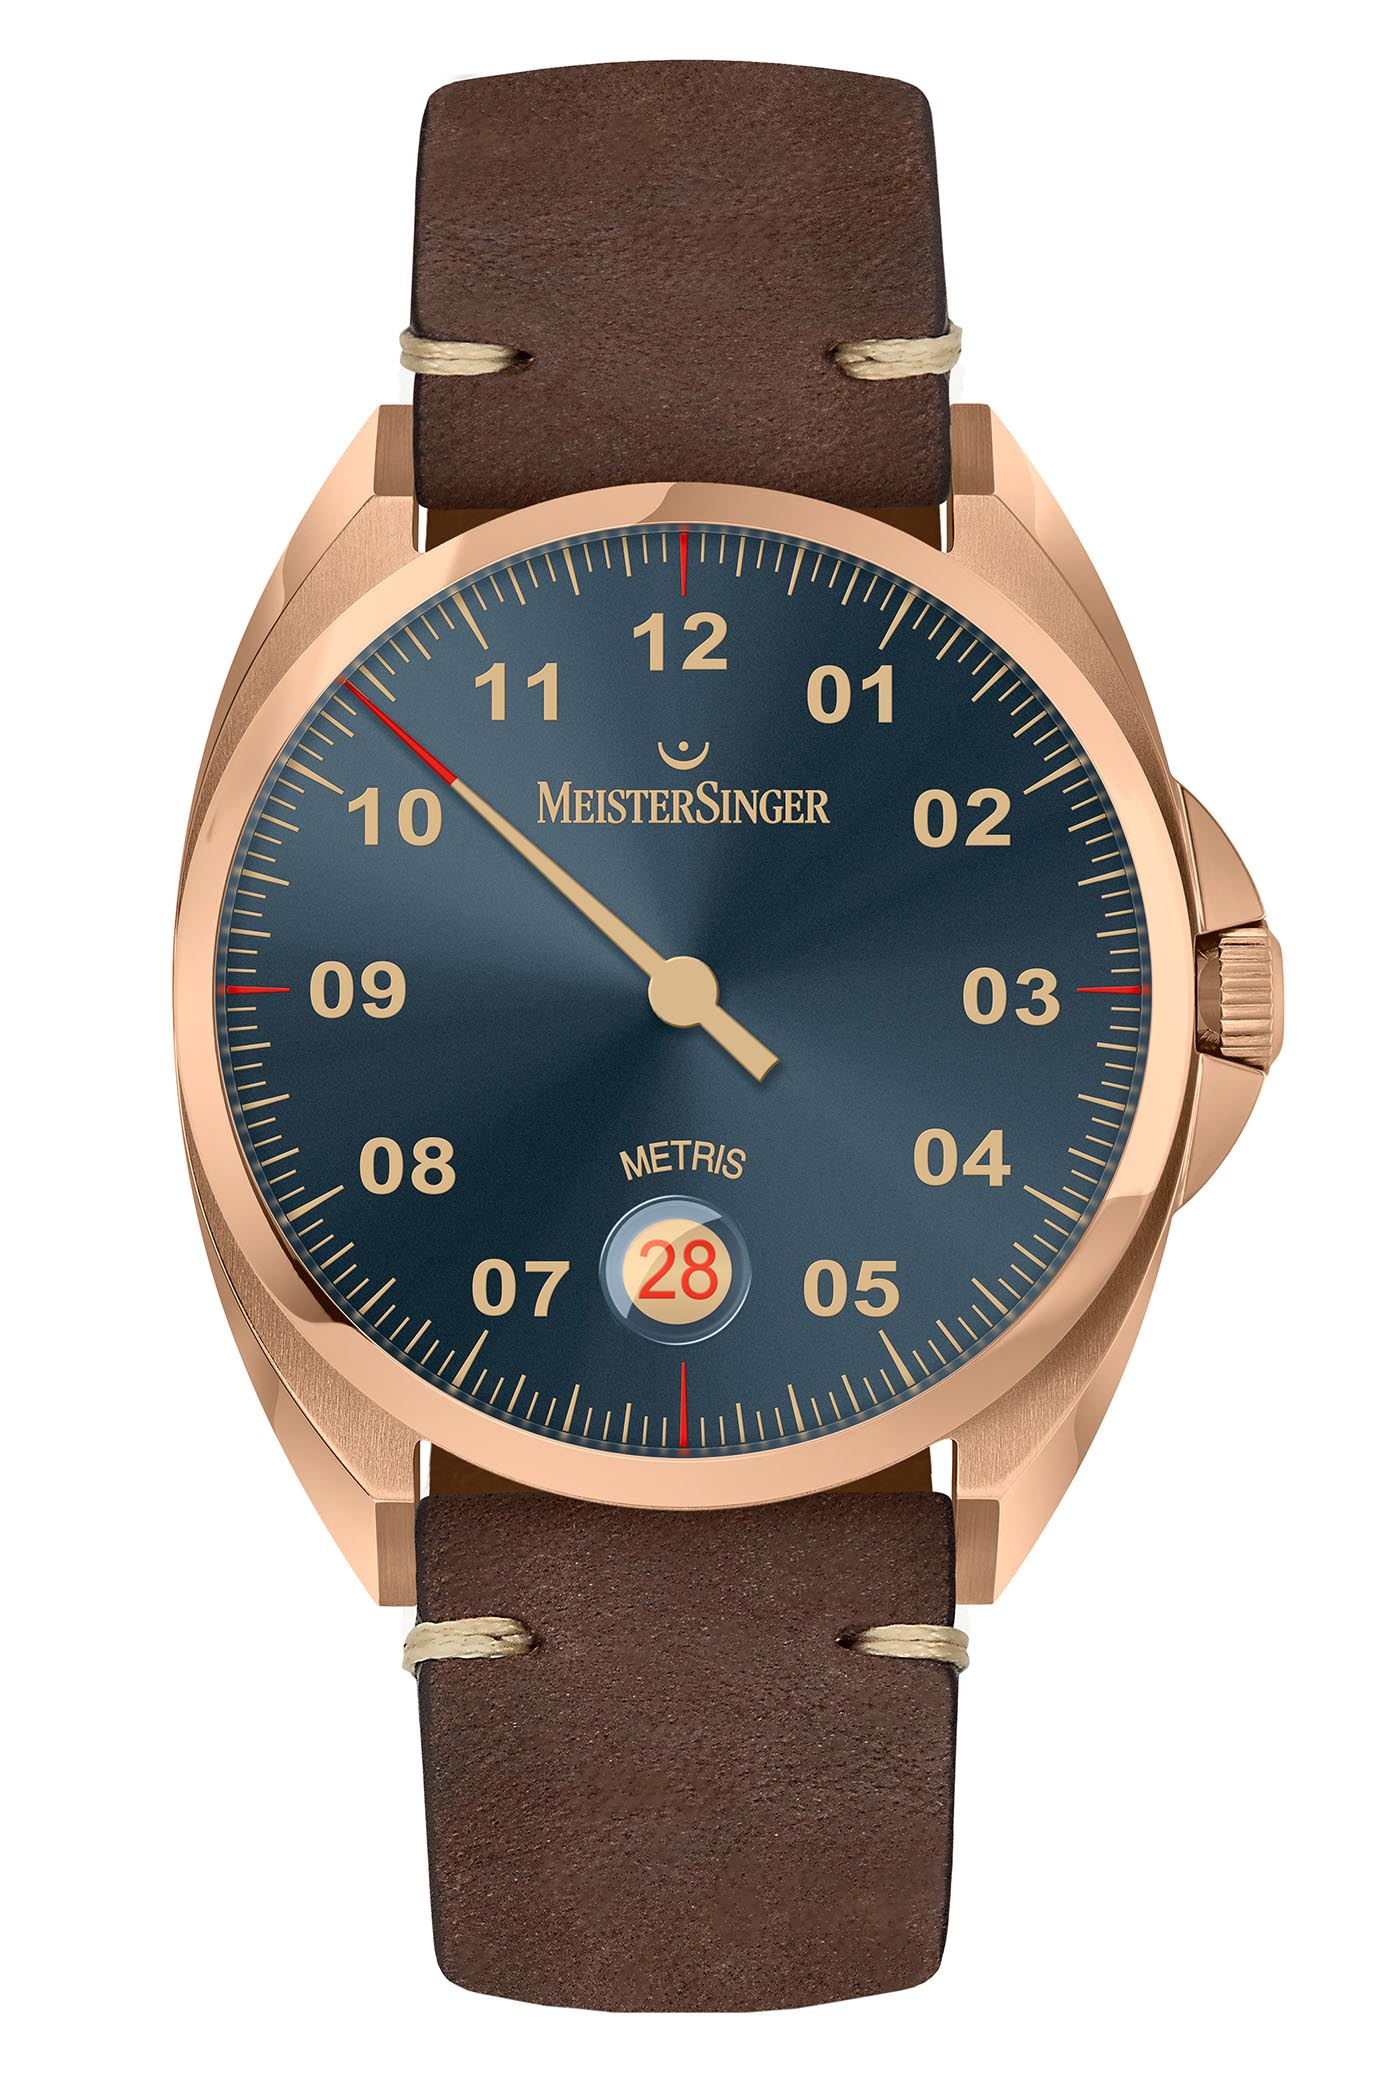 Baselworld 2019 - MeisterSinger Bronze Editions No. 03, Perigraph and Metris - 4